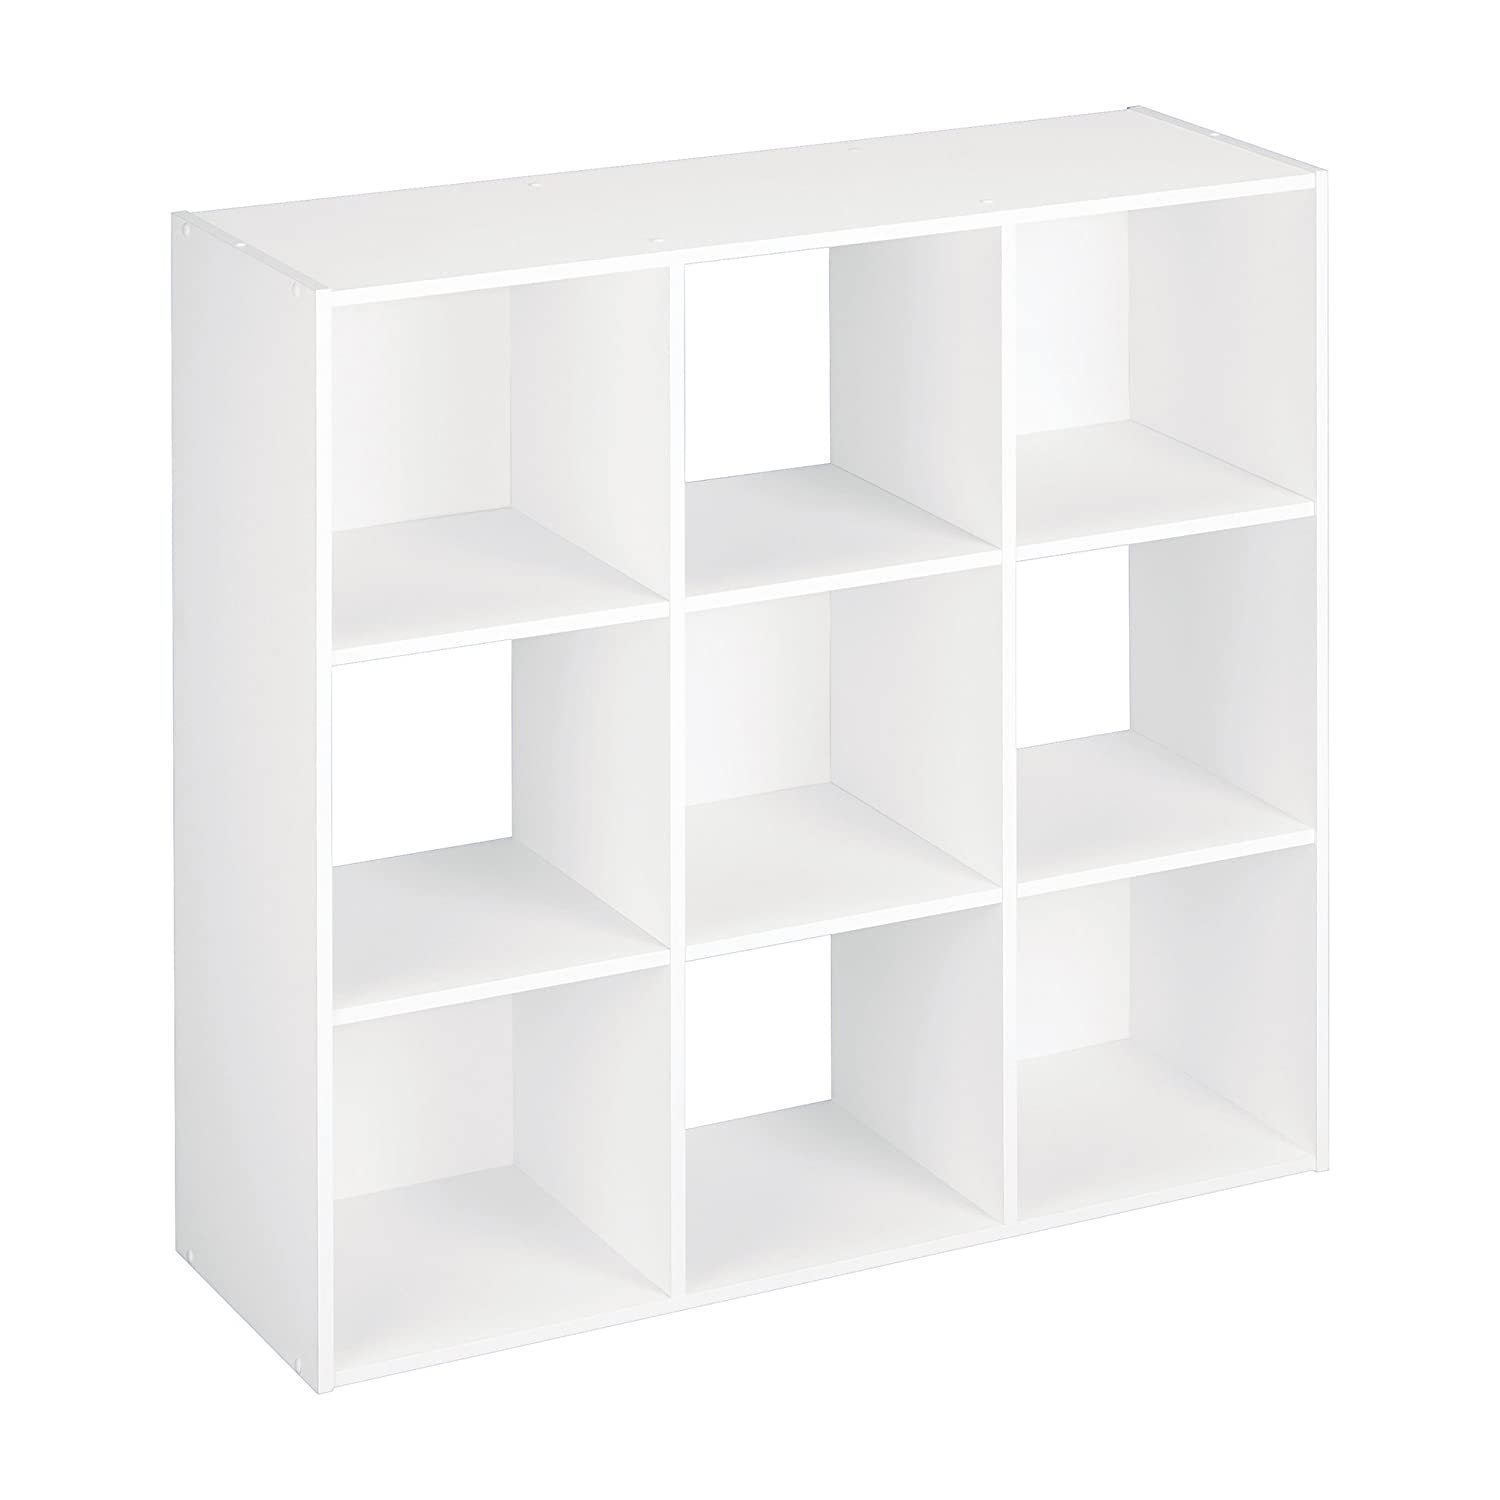 amazon com closetmaid 421 cubeicals organizer 9 cube white home rh amazon com cube shelving white and orange cube shelving white and orange